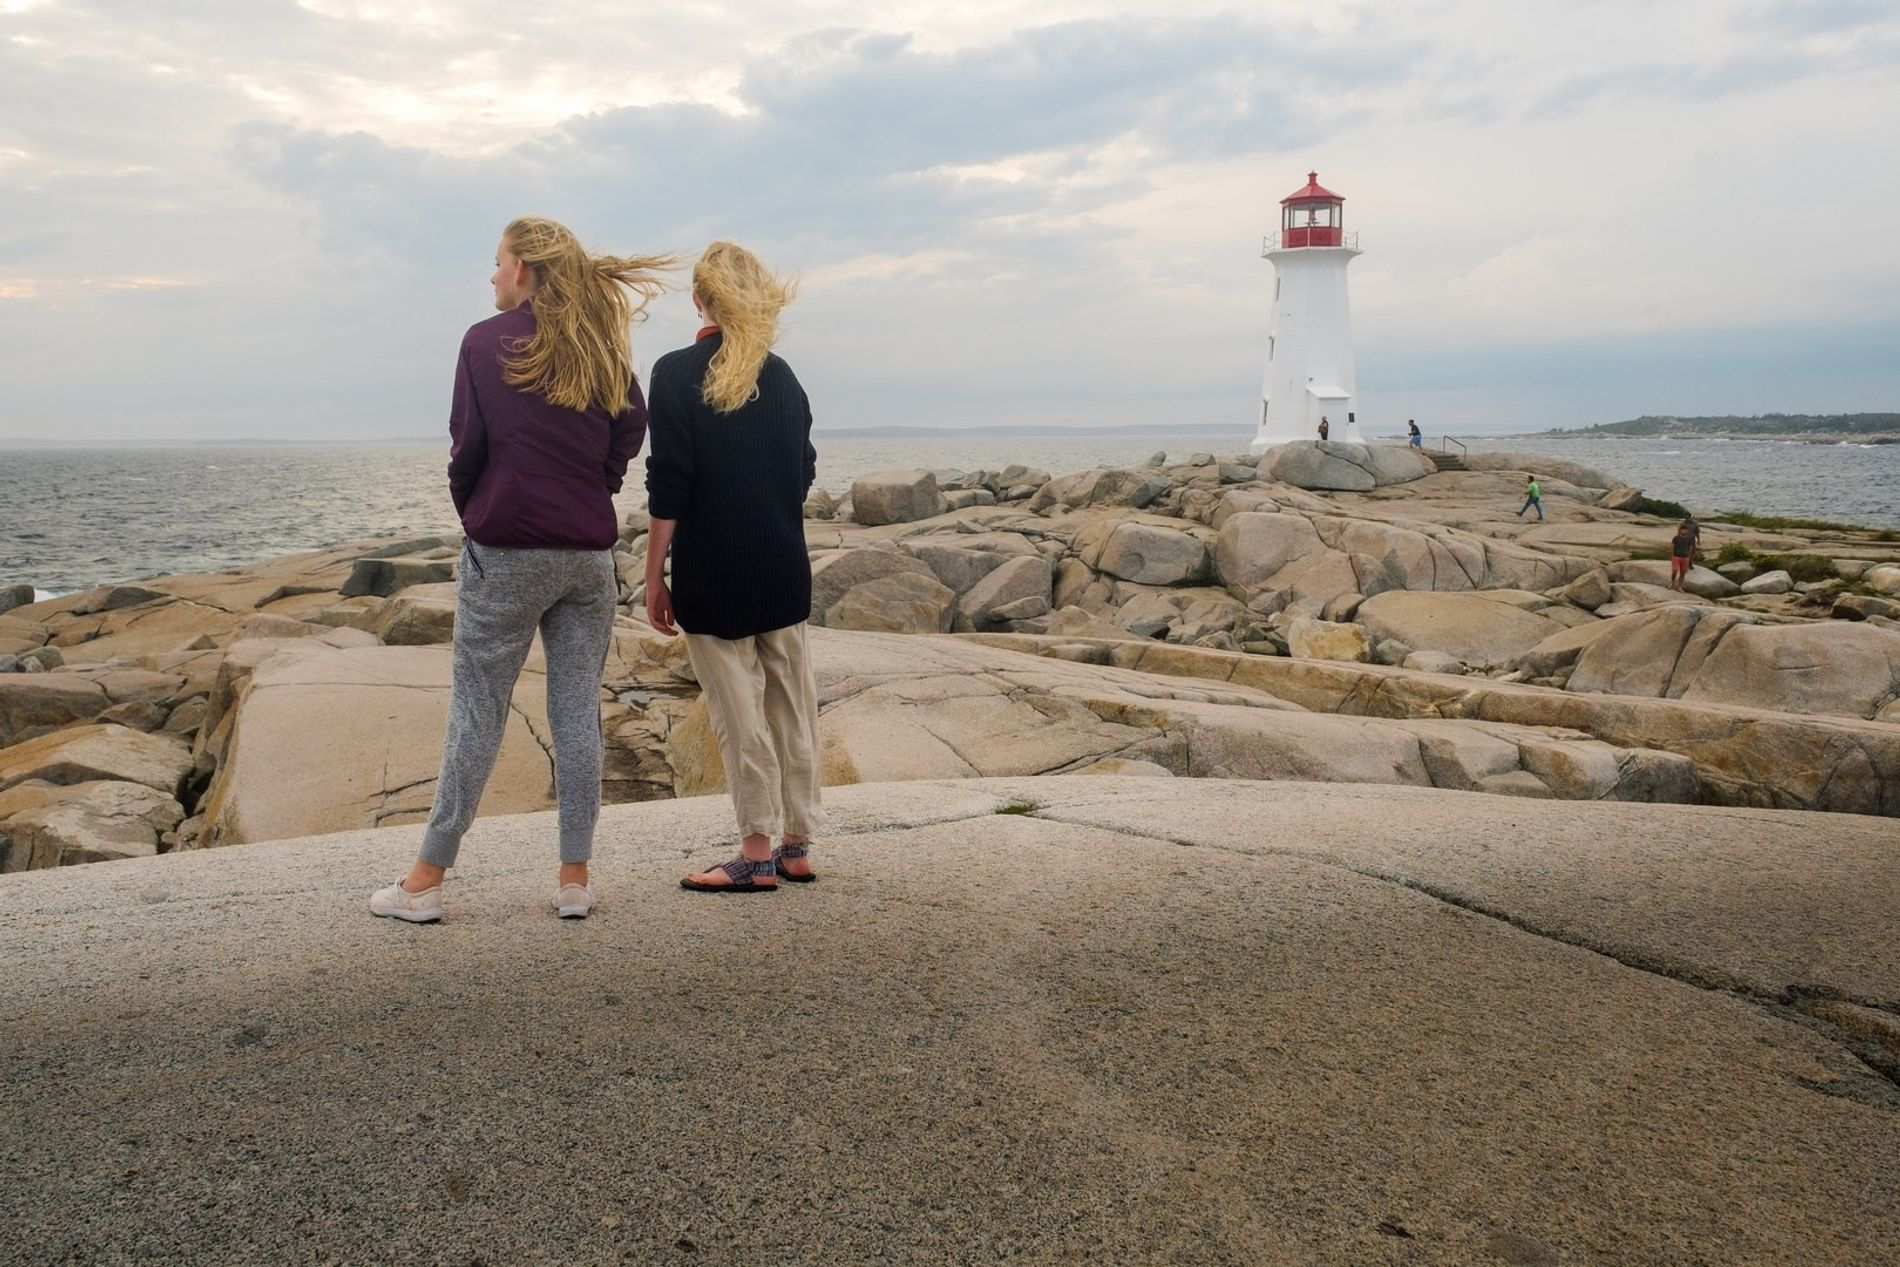 Peggy's Point Lighthouse is one of the most recognisable structures on Nova Scotia's Lighthouse Route.